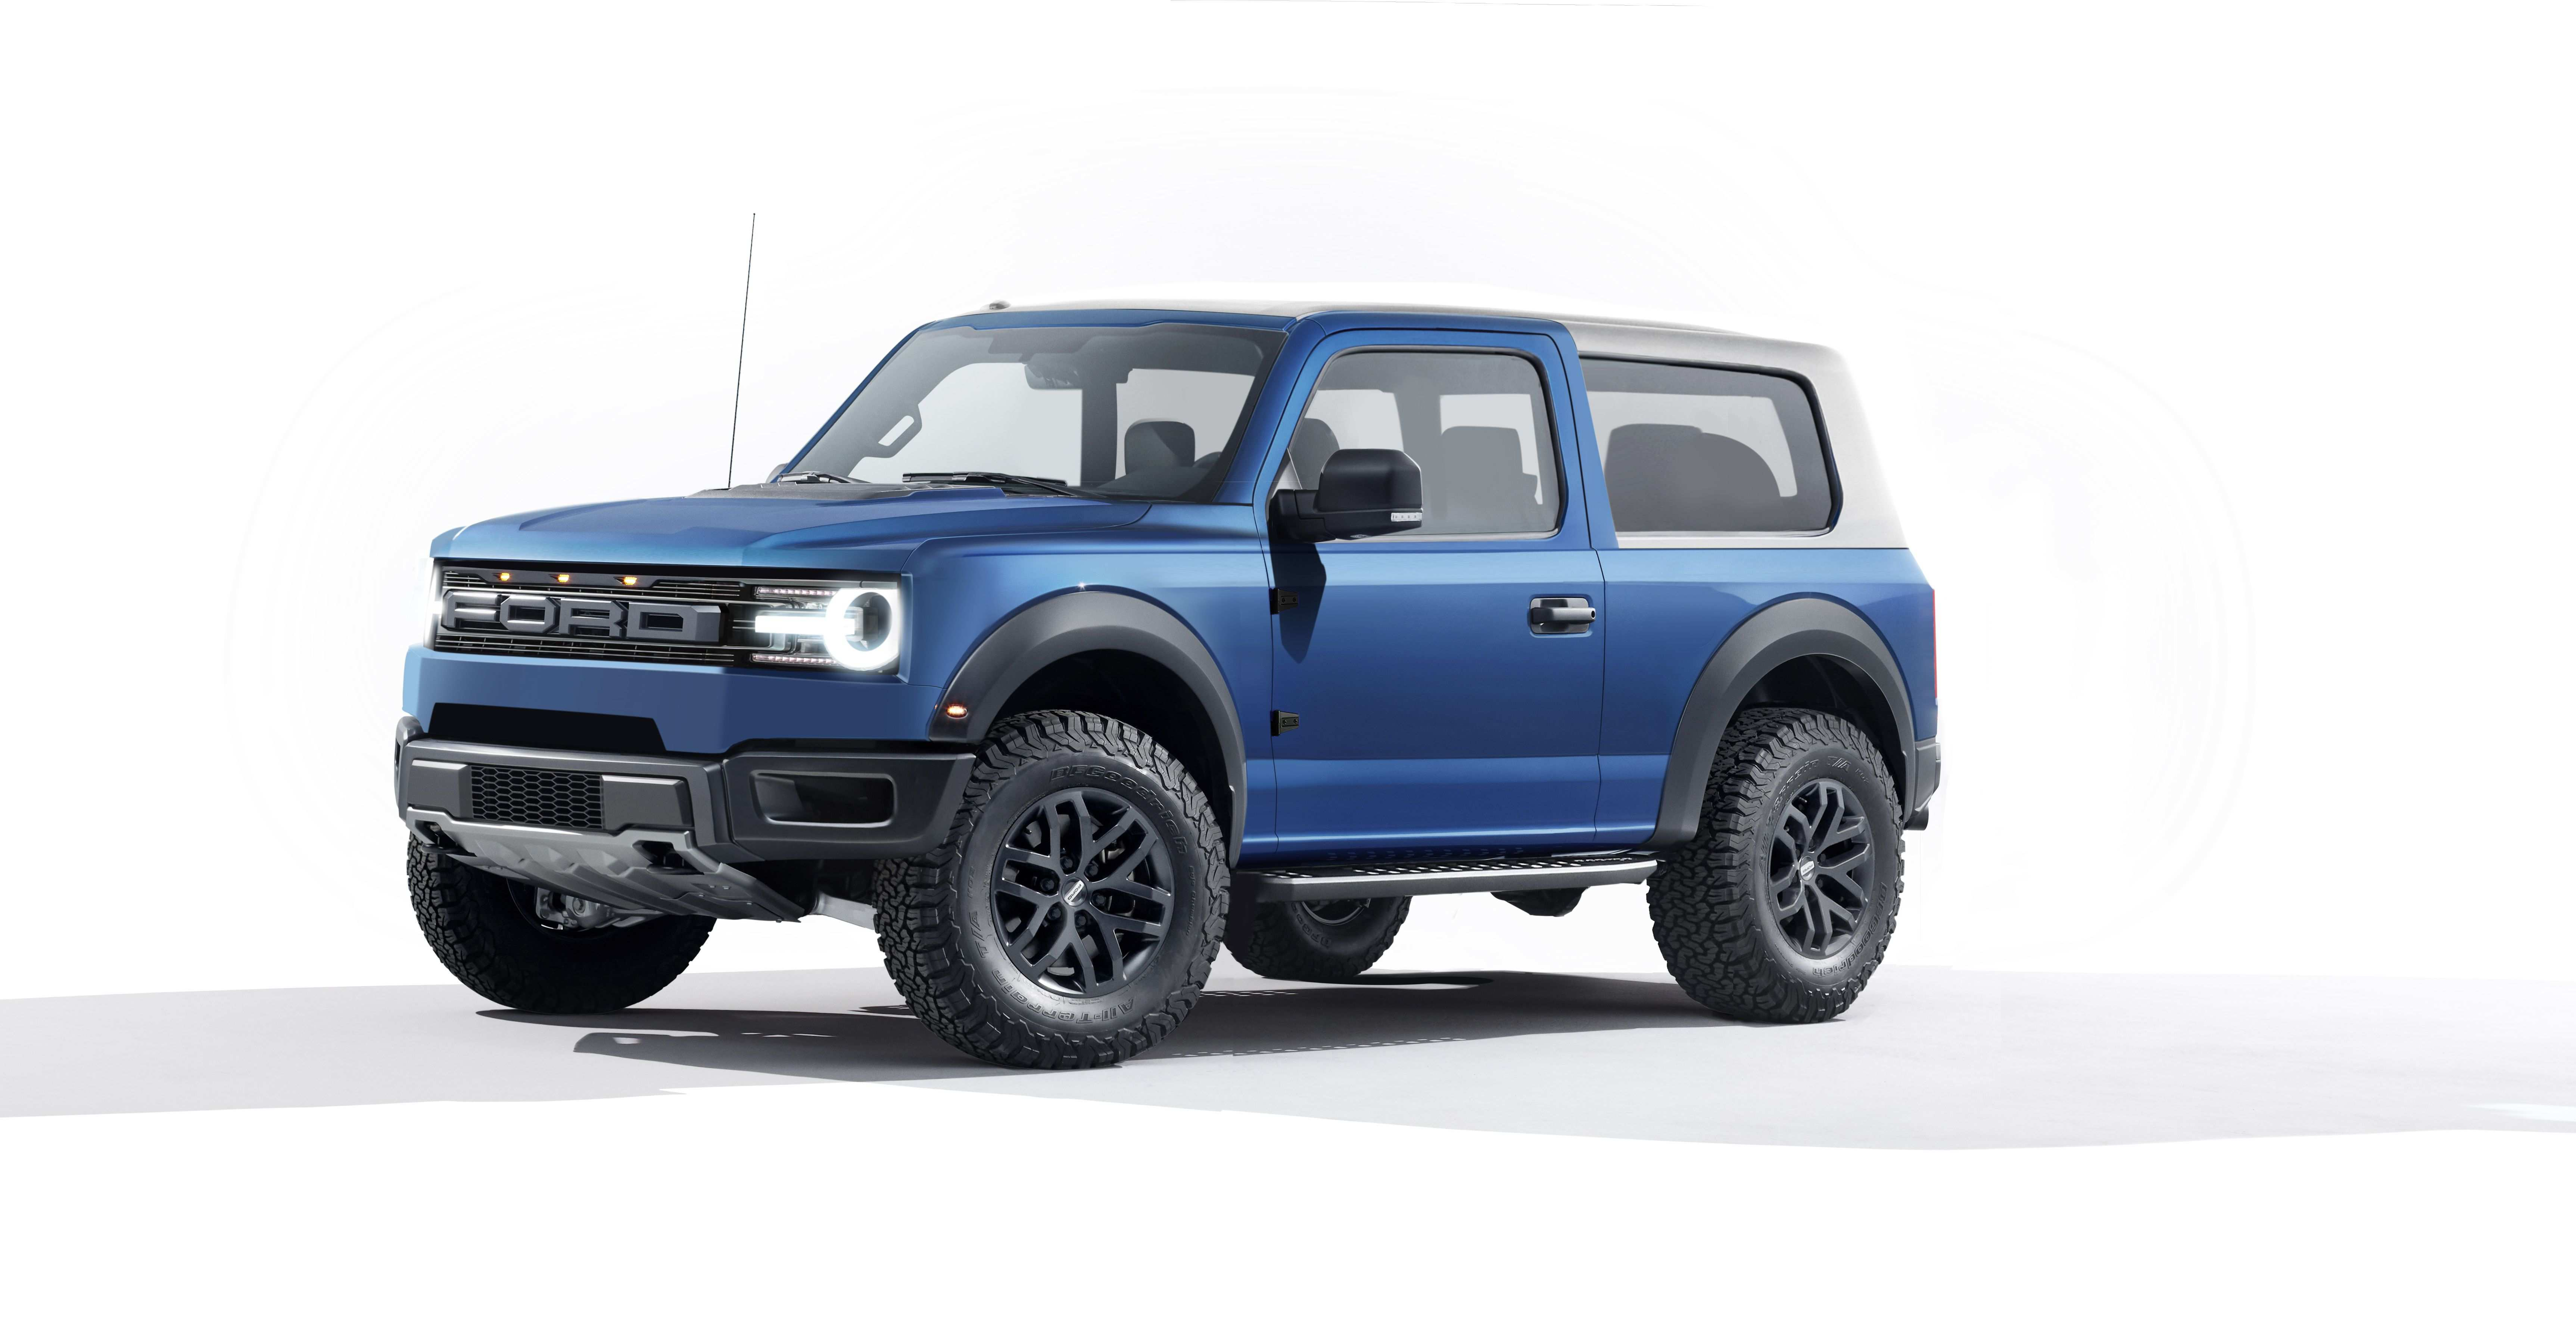 62 Concept of When Will The 2020 Ford Bronco Be Released New Review for When Will The 2020 Ford Bronco Be Released